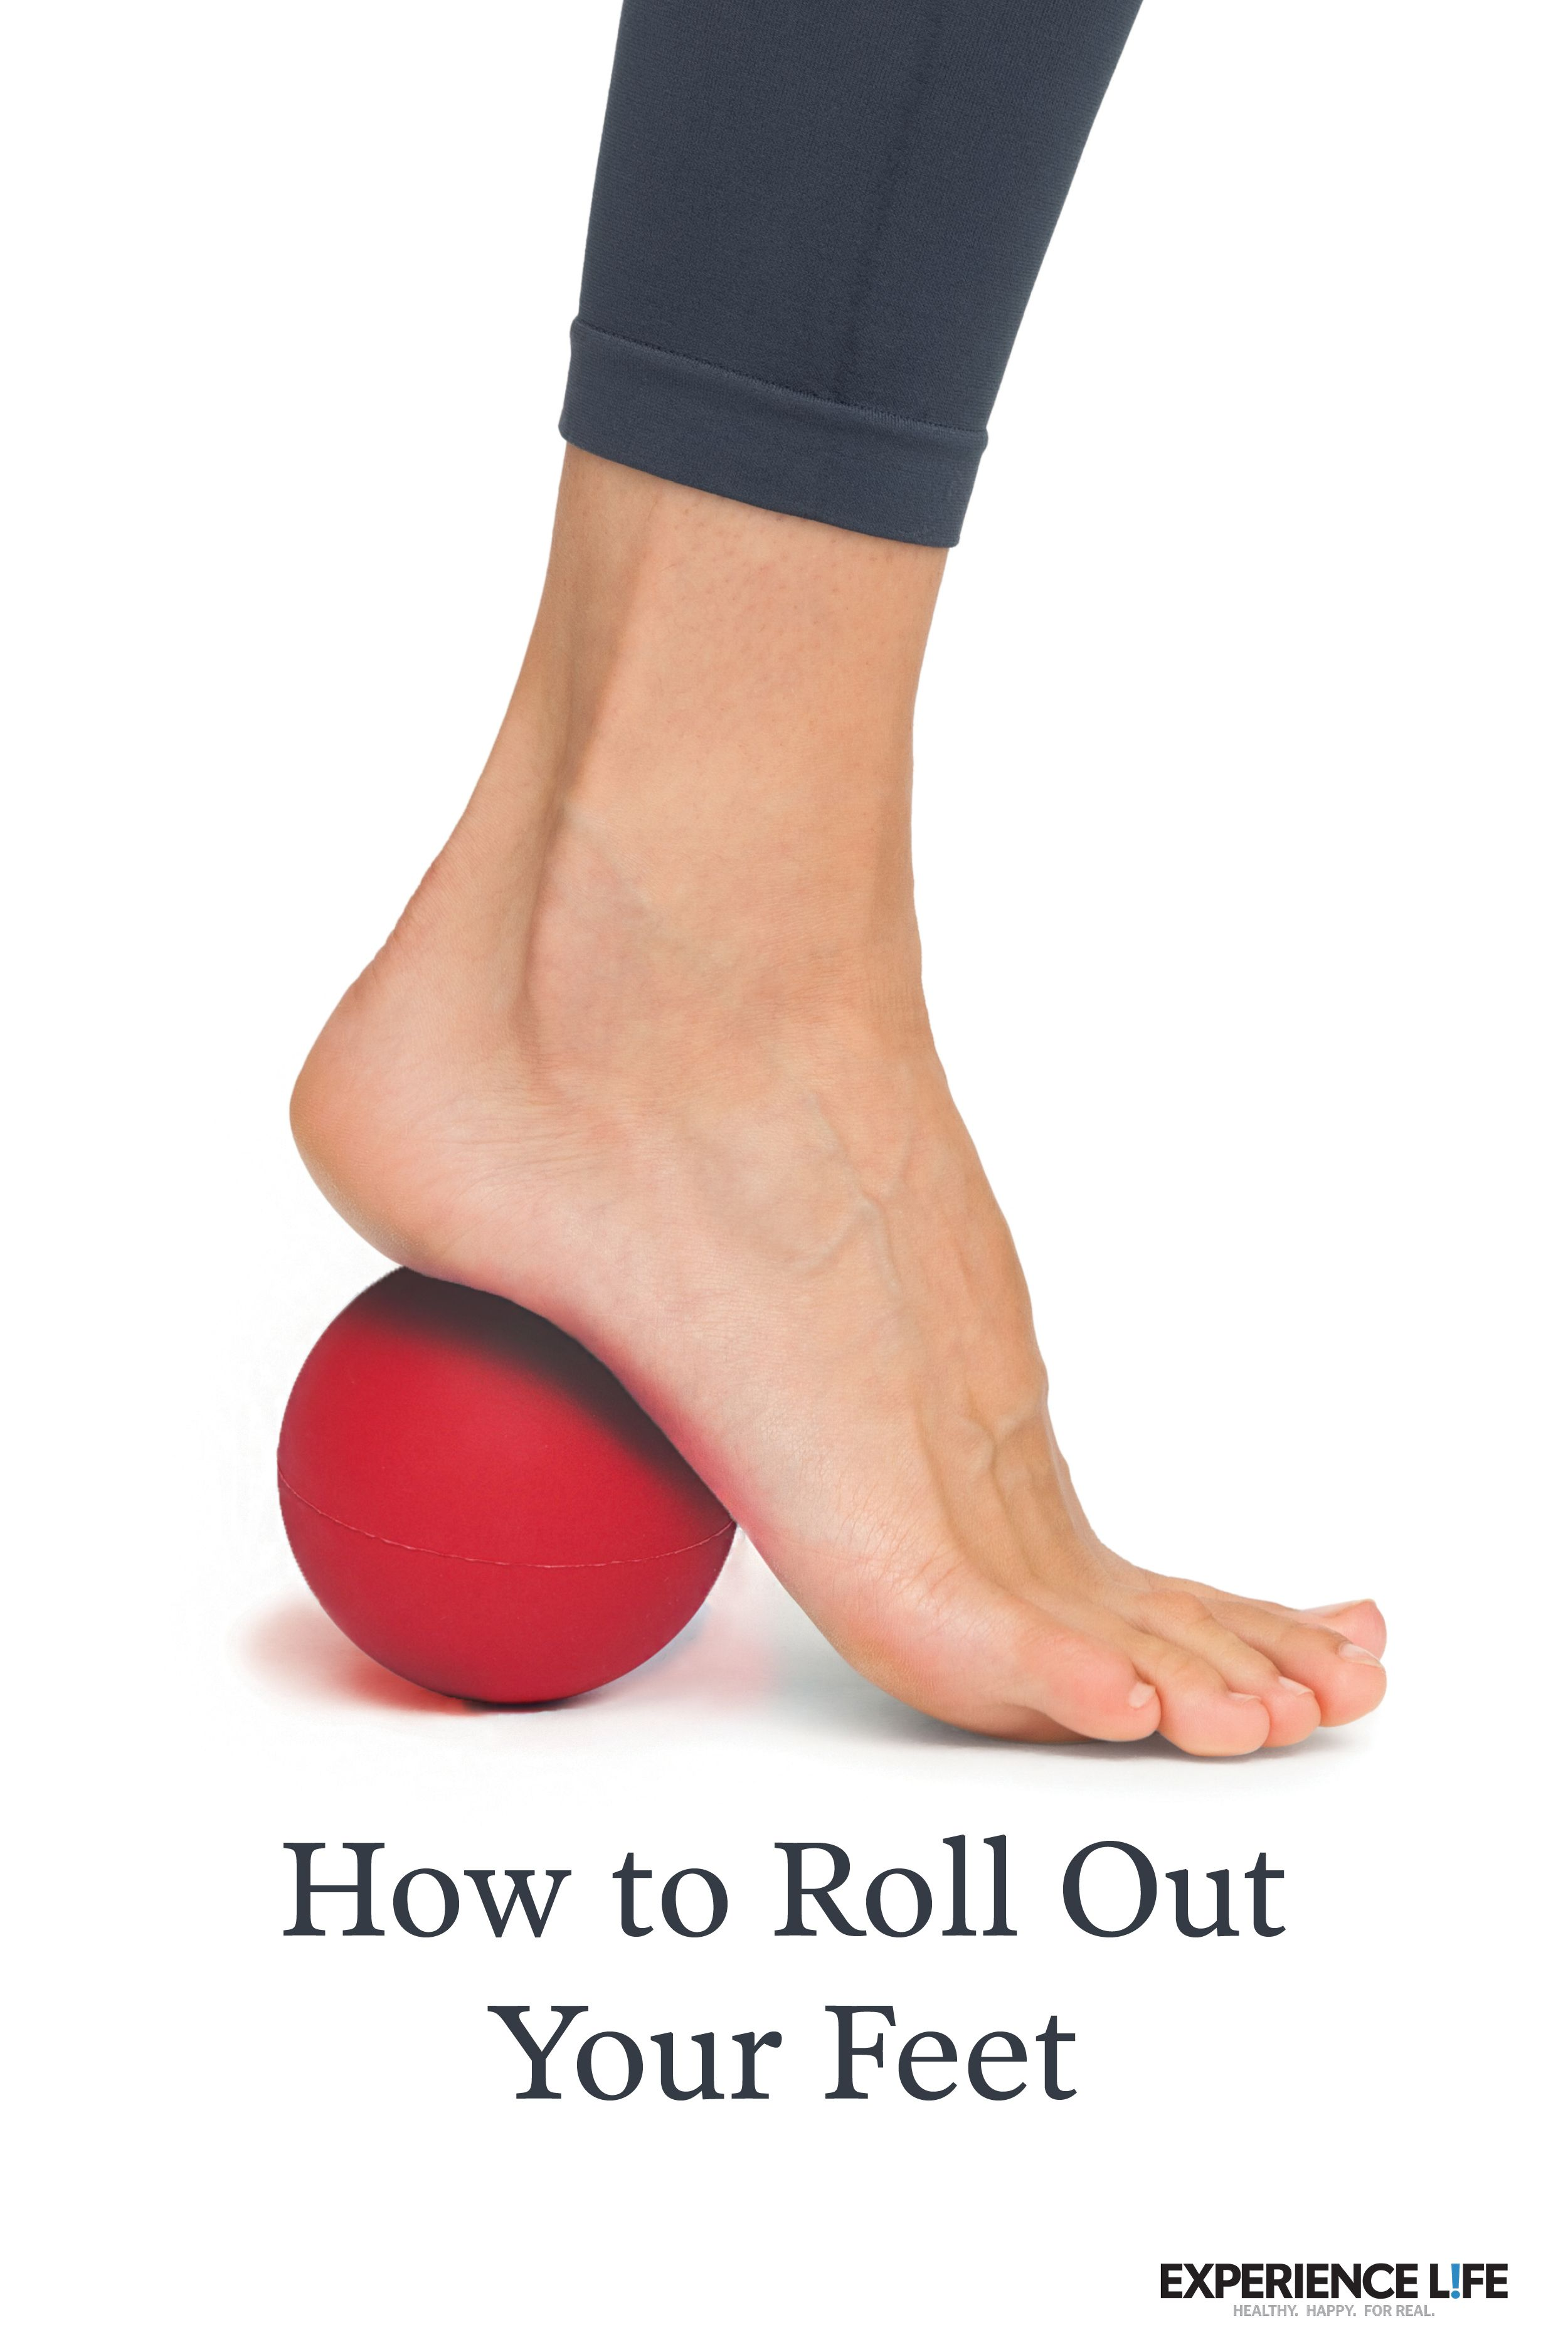 How To Roll Out Your Feet Wellness Fitness Fitness Motivation Inspiration Health And Wellness